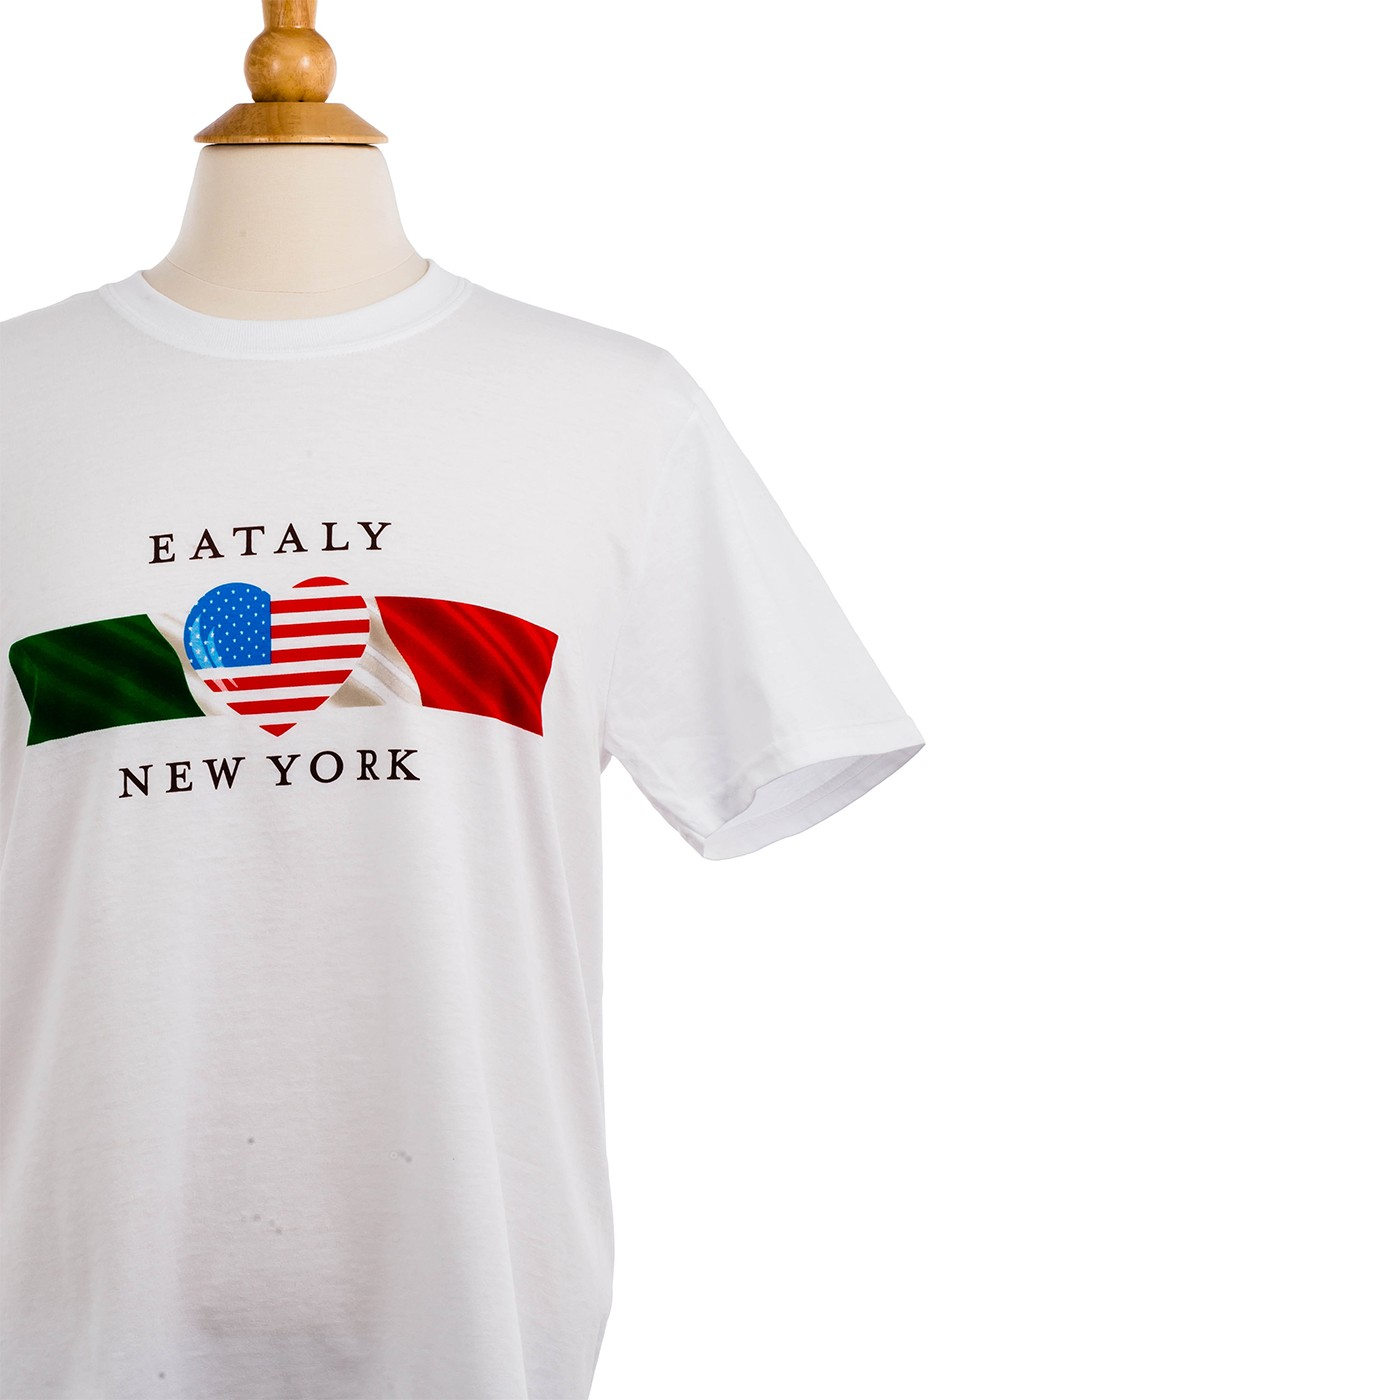 You Are What You Eataly T-shirt - Small